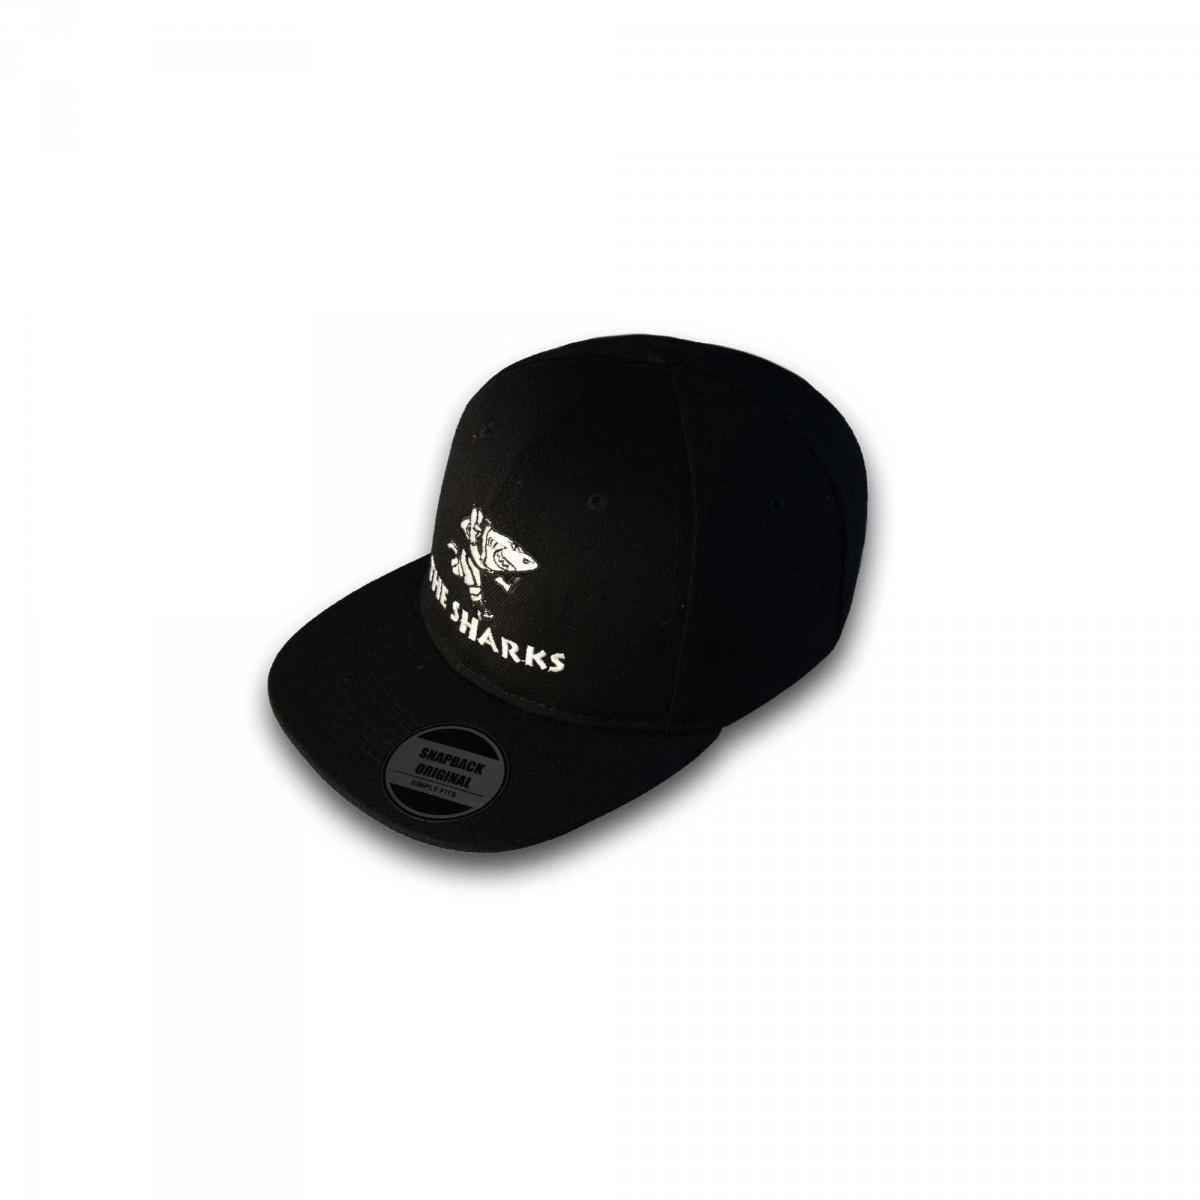 The Sharks Blk Rugby Licence Headwear